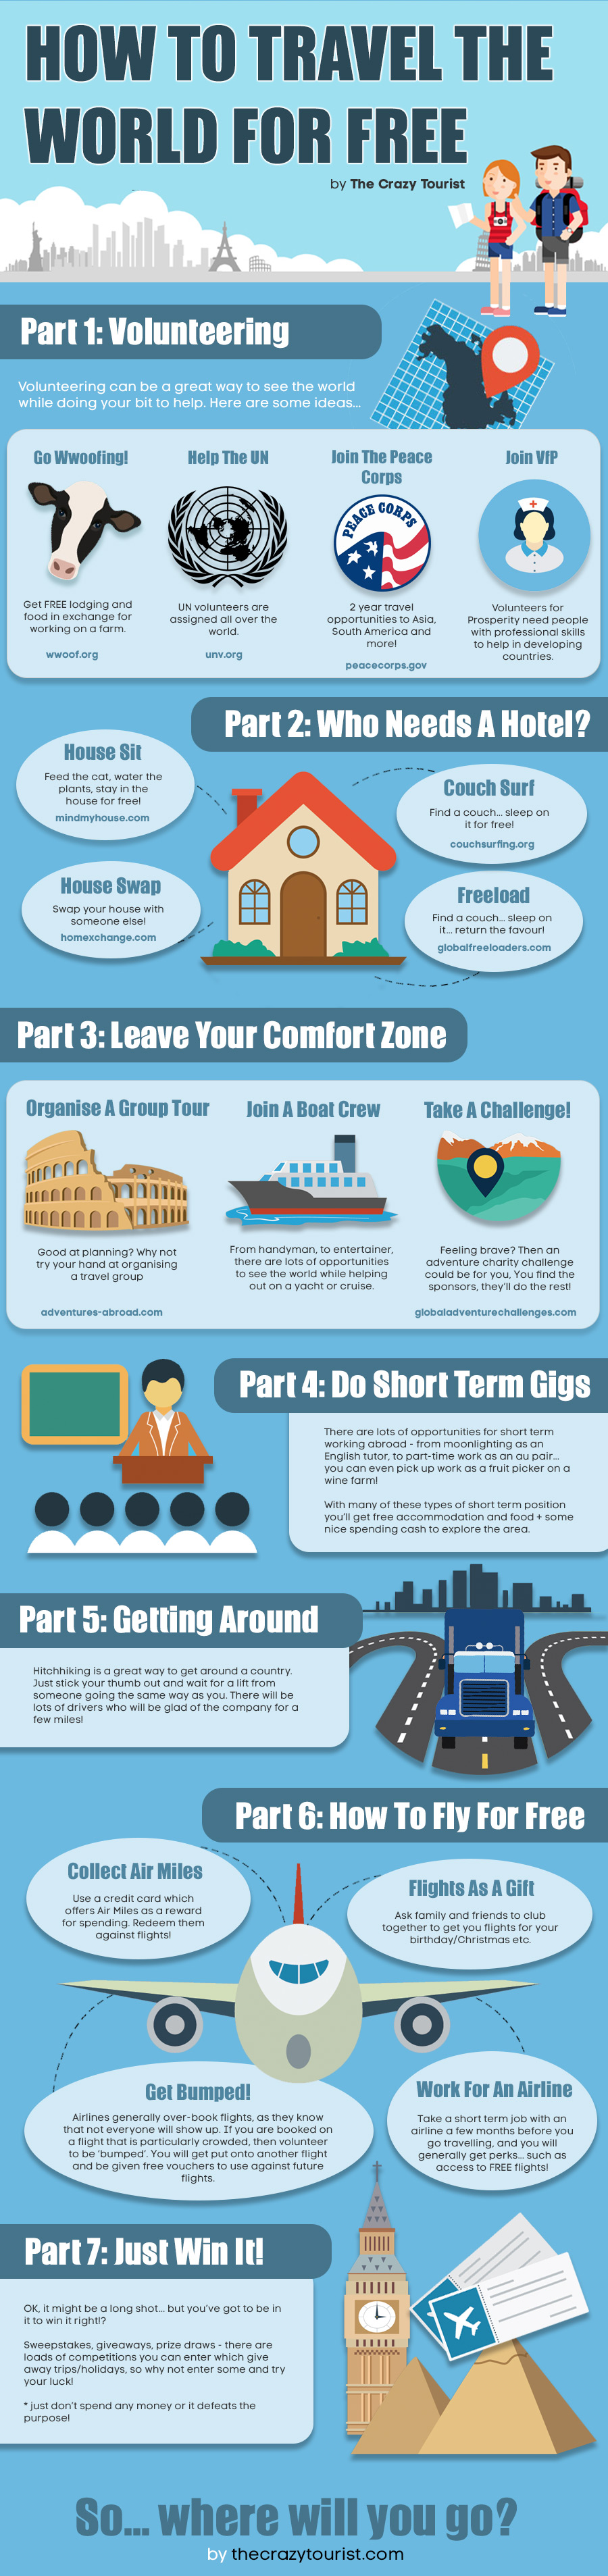 travel-the-world-for-free-infographic2